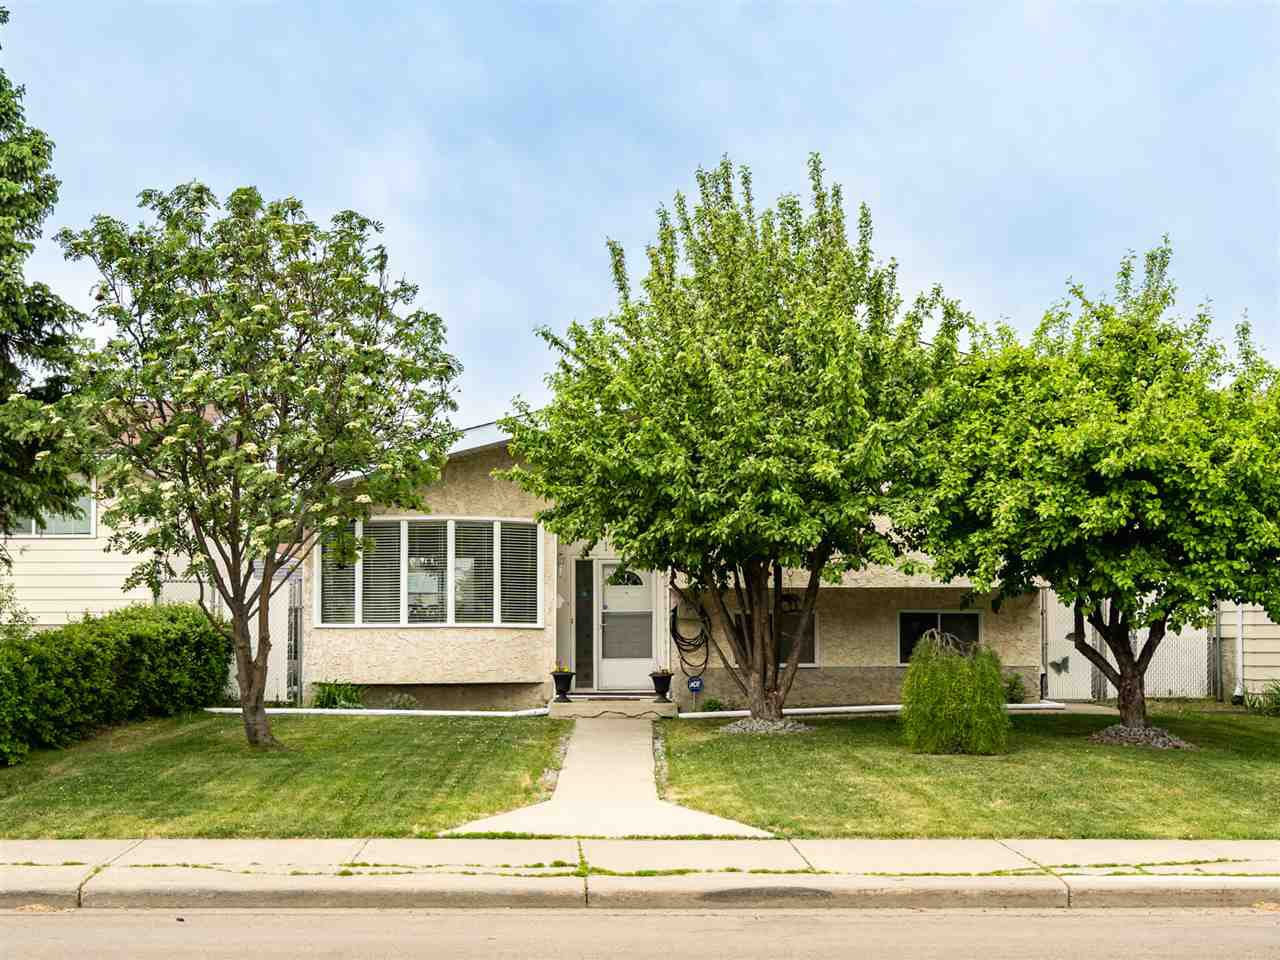 Main Photo: 1736 62 Street in Edmonton: Zone 29 House for sale : MLS®# E4172387